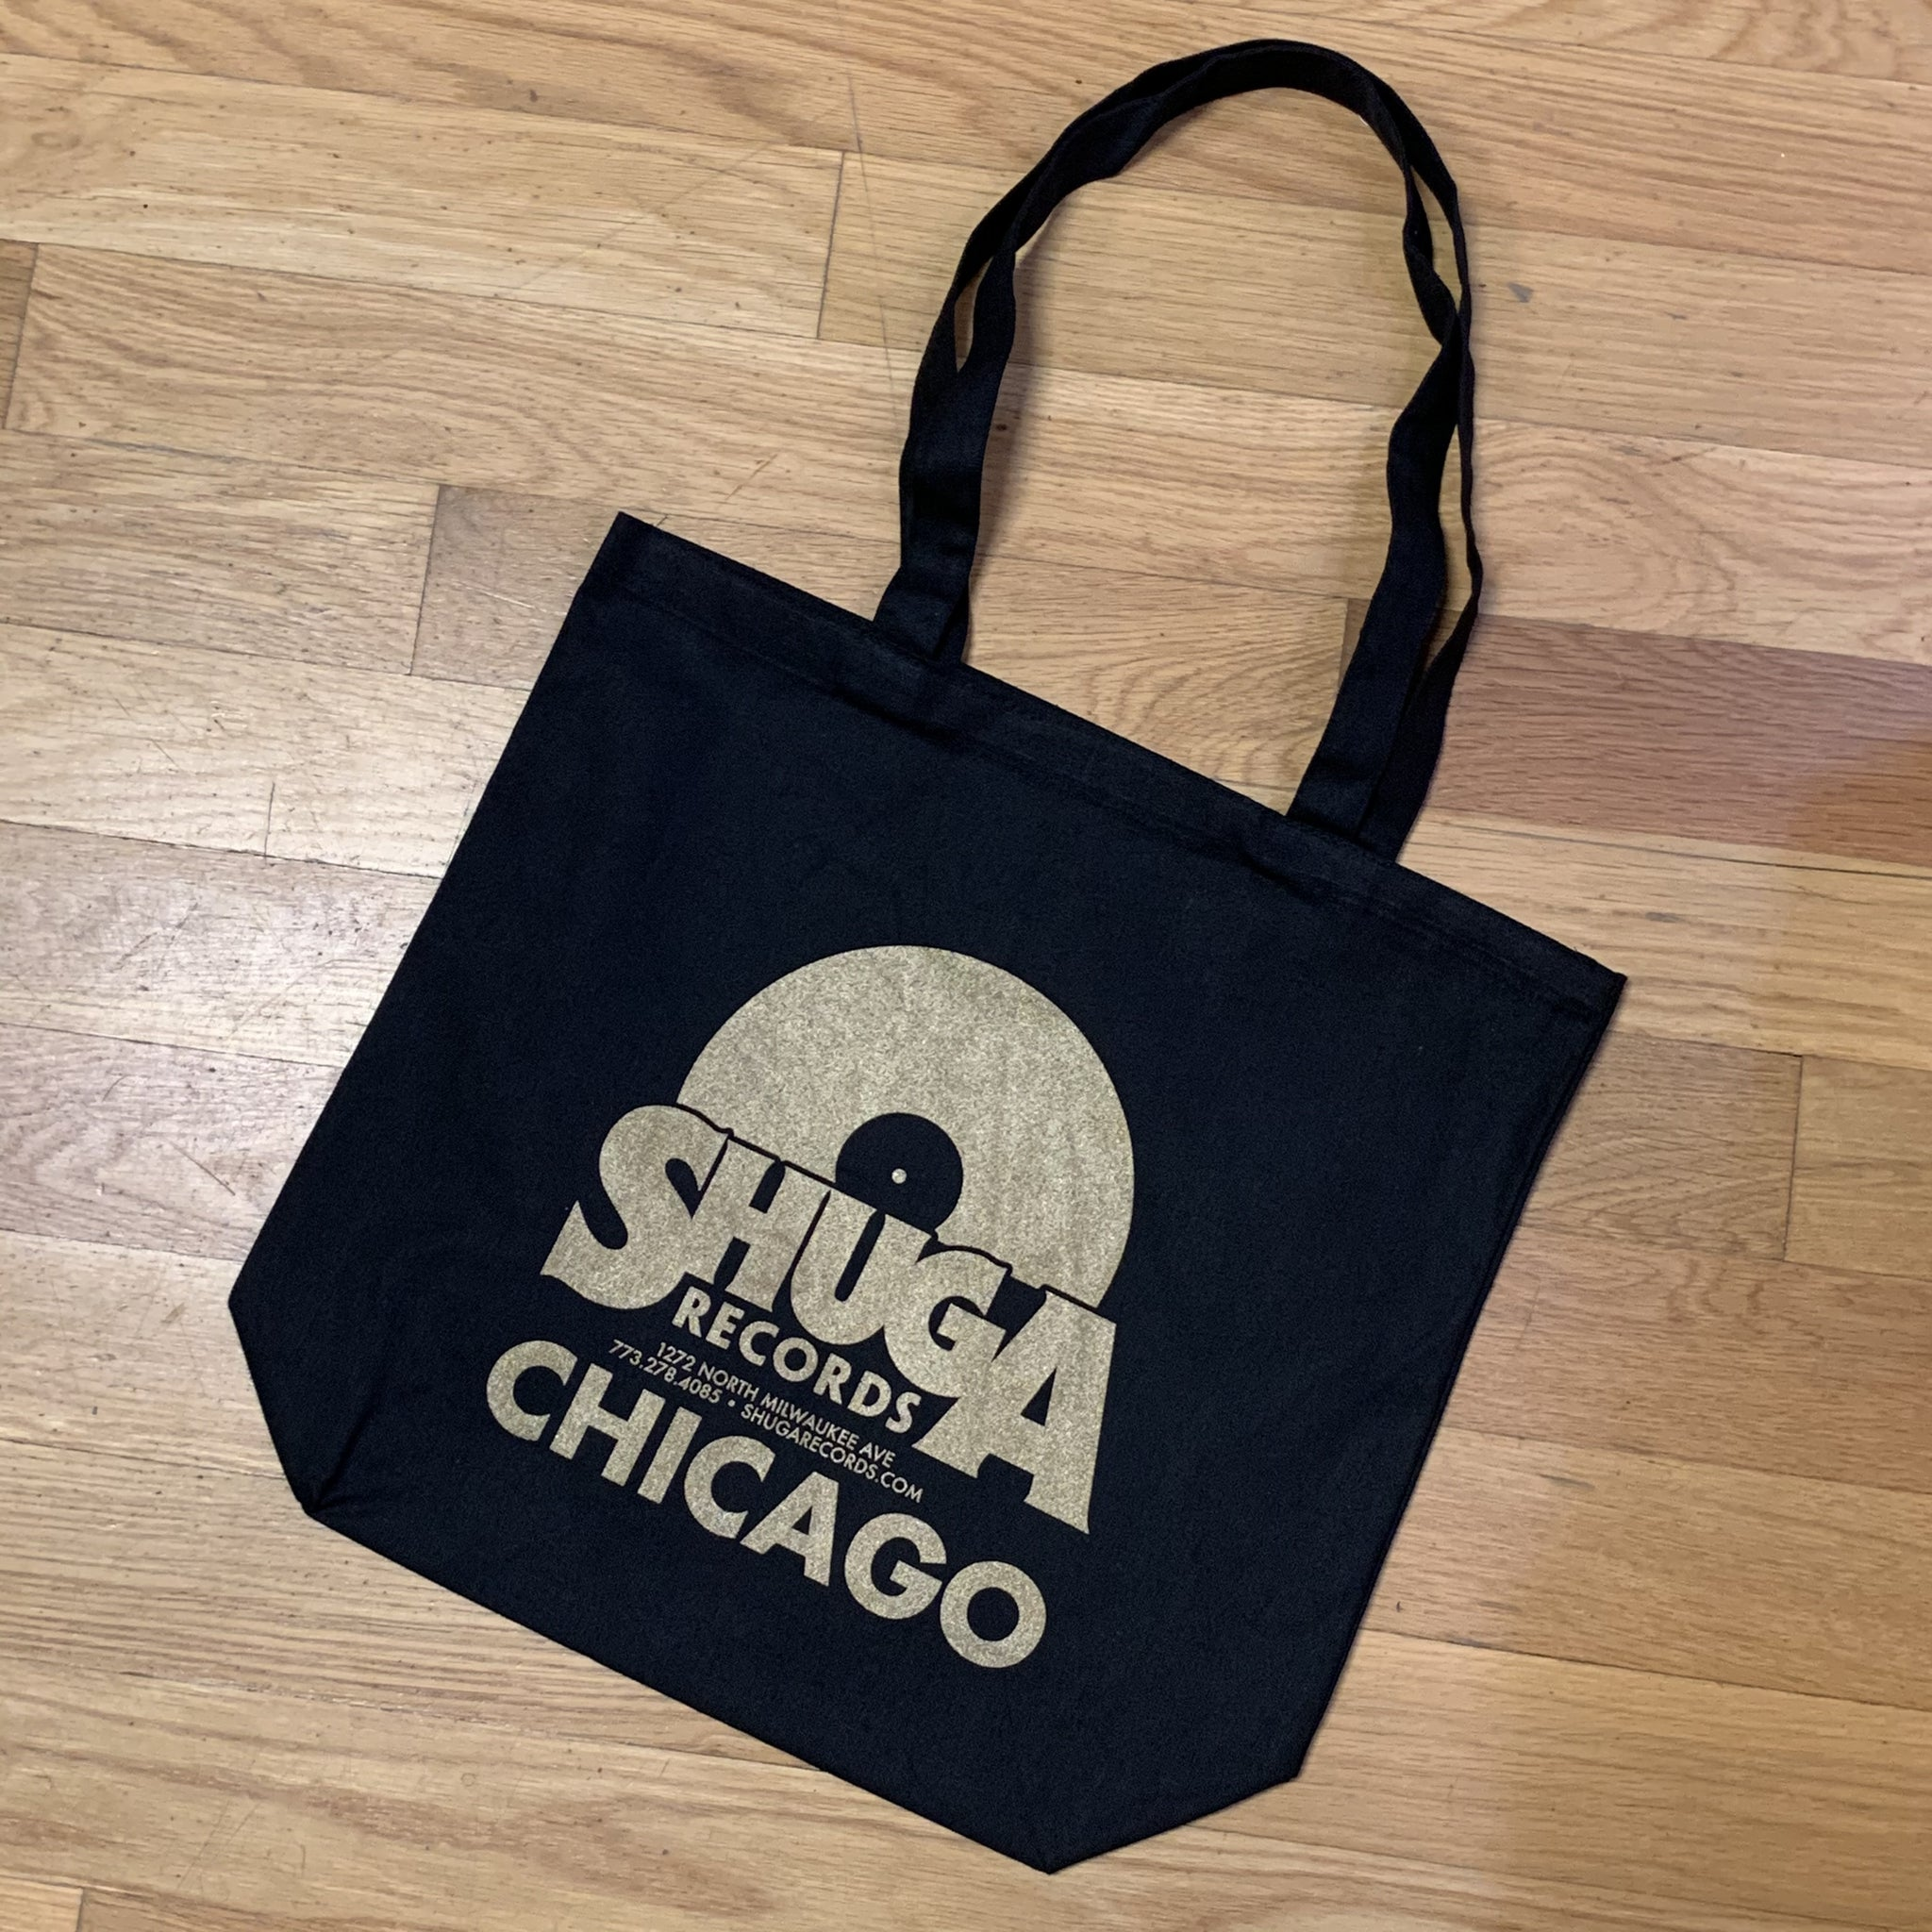 Second Press Shuga Records Tote Bag!